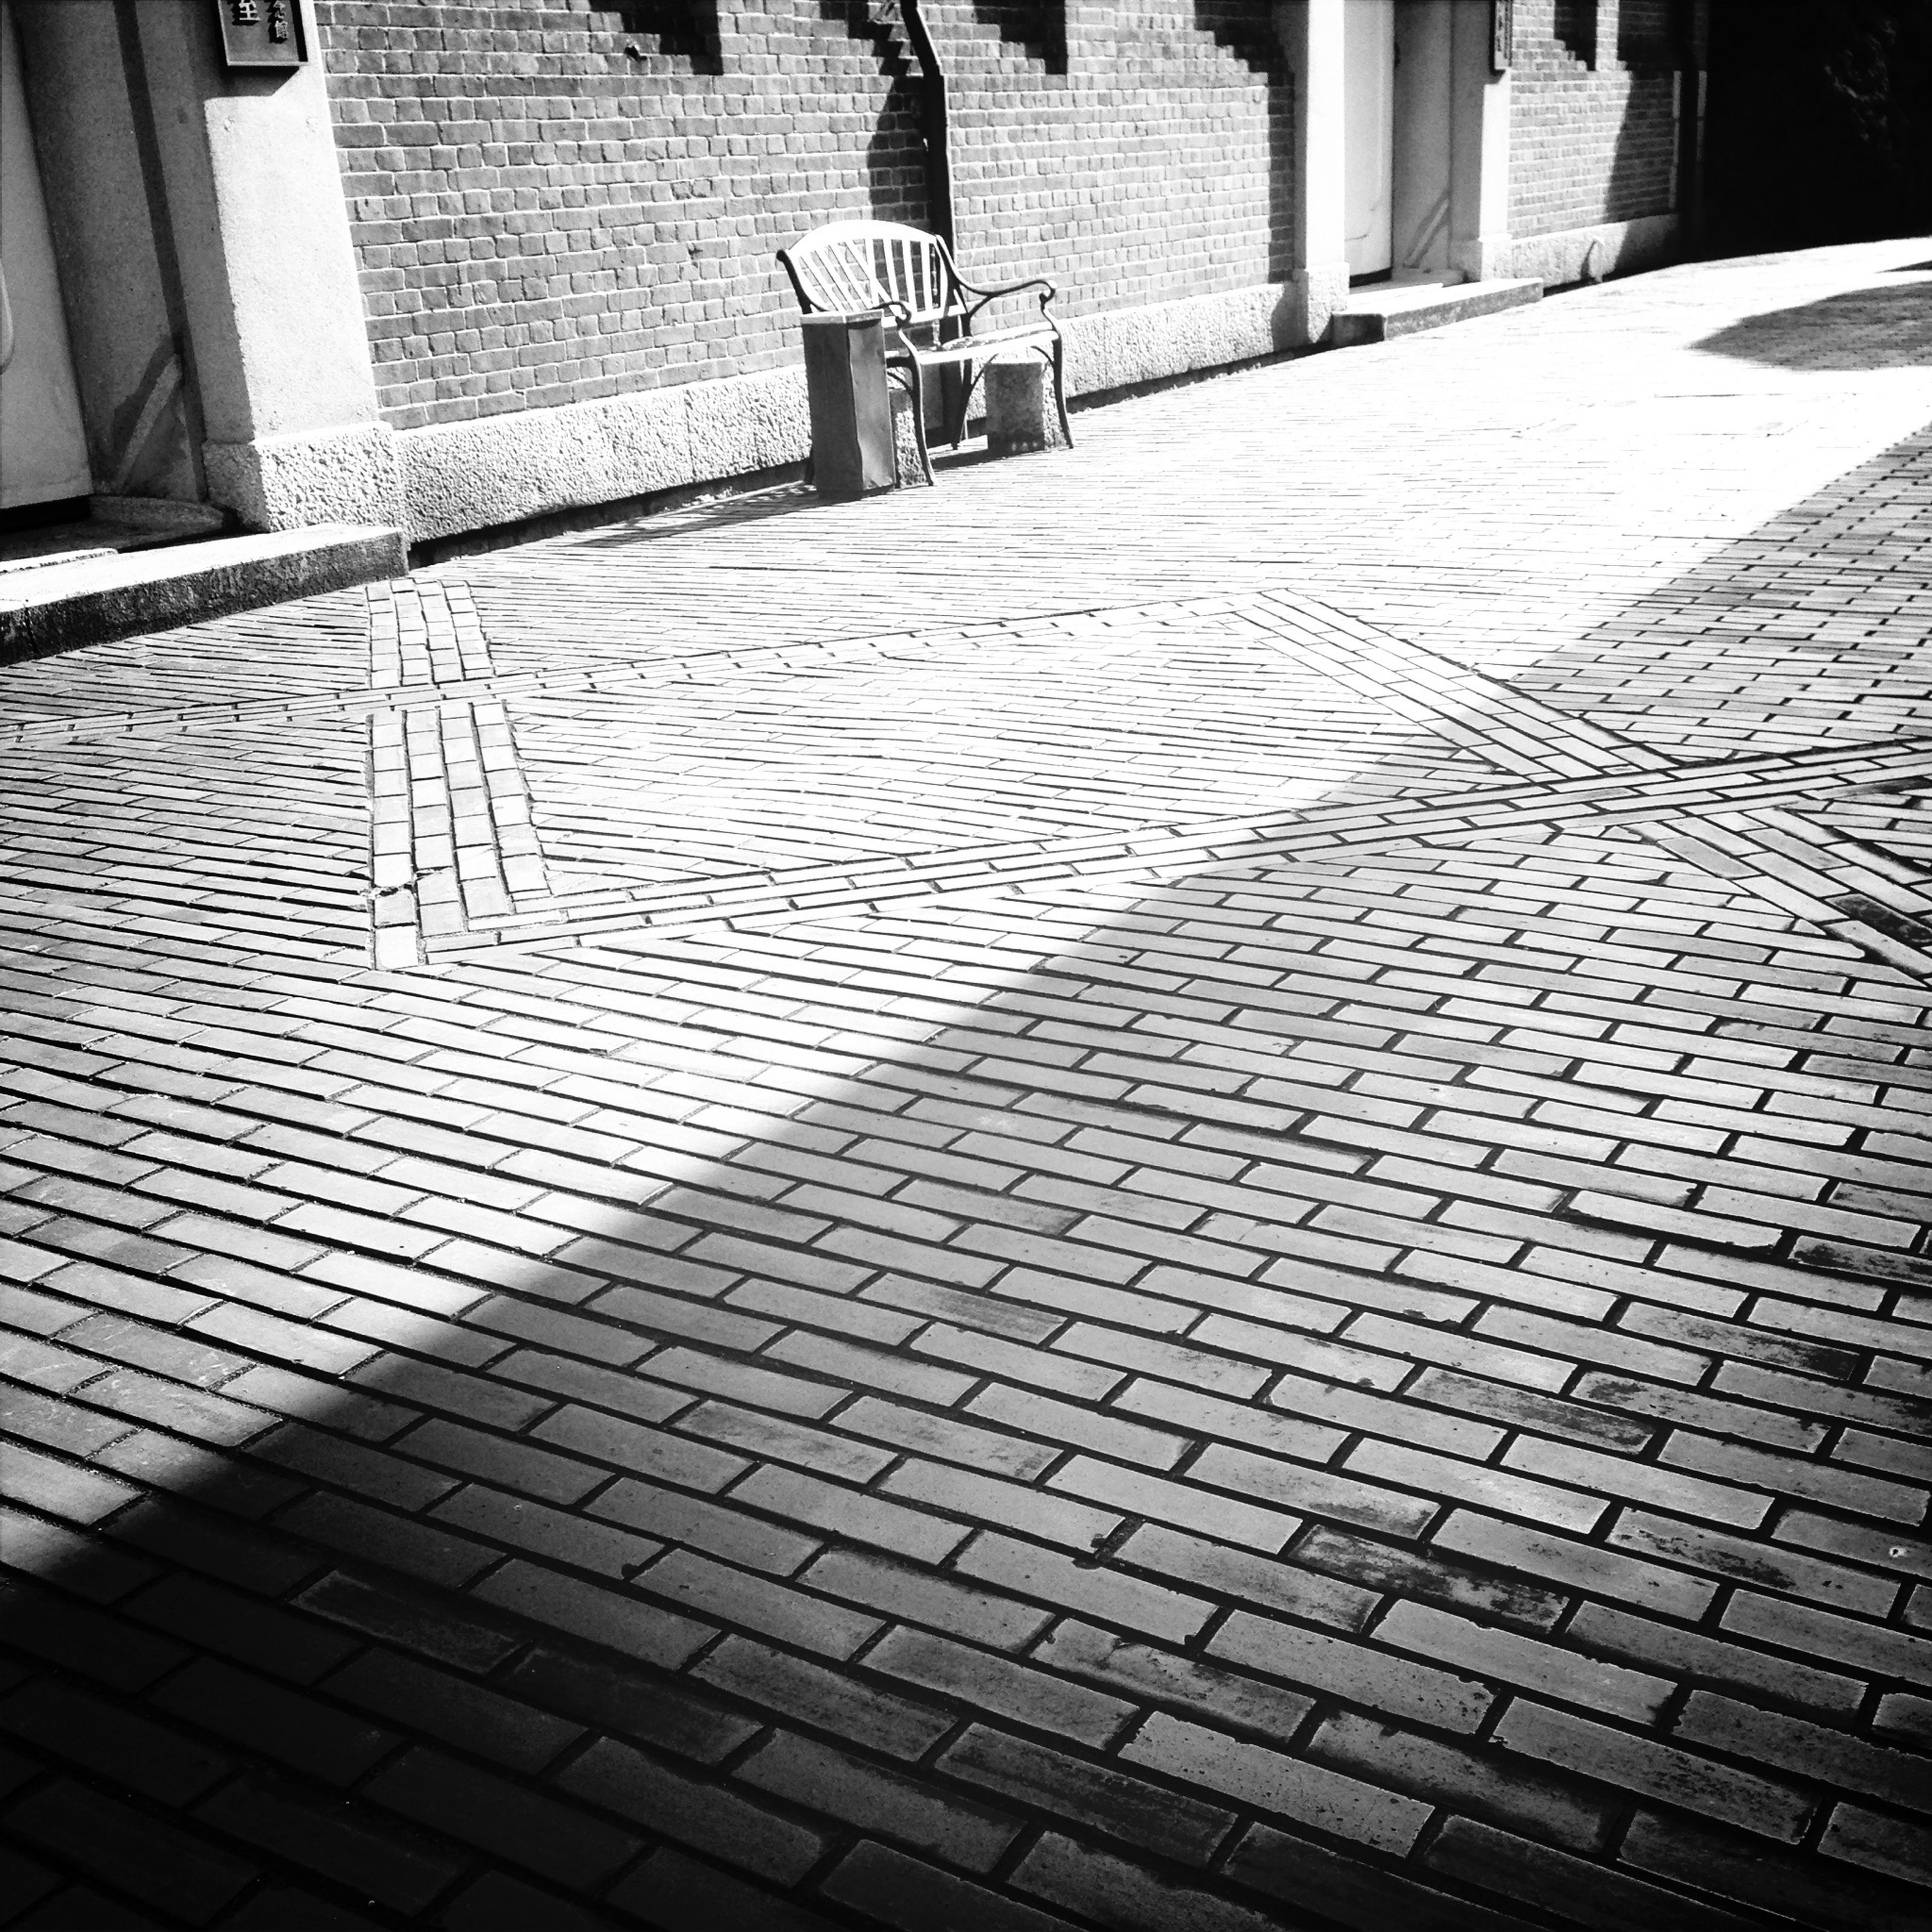 architecture, building exterior, built structure, cobblestone, shadow, pattern, sunlight, street, city, high angle view, the way forward, day, building, outdoors, footpath, sidewalk, no people, walkway, paving stone, empty